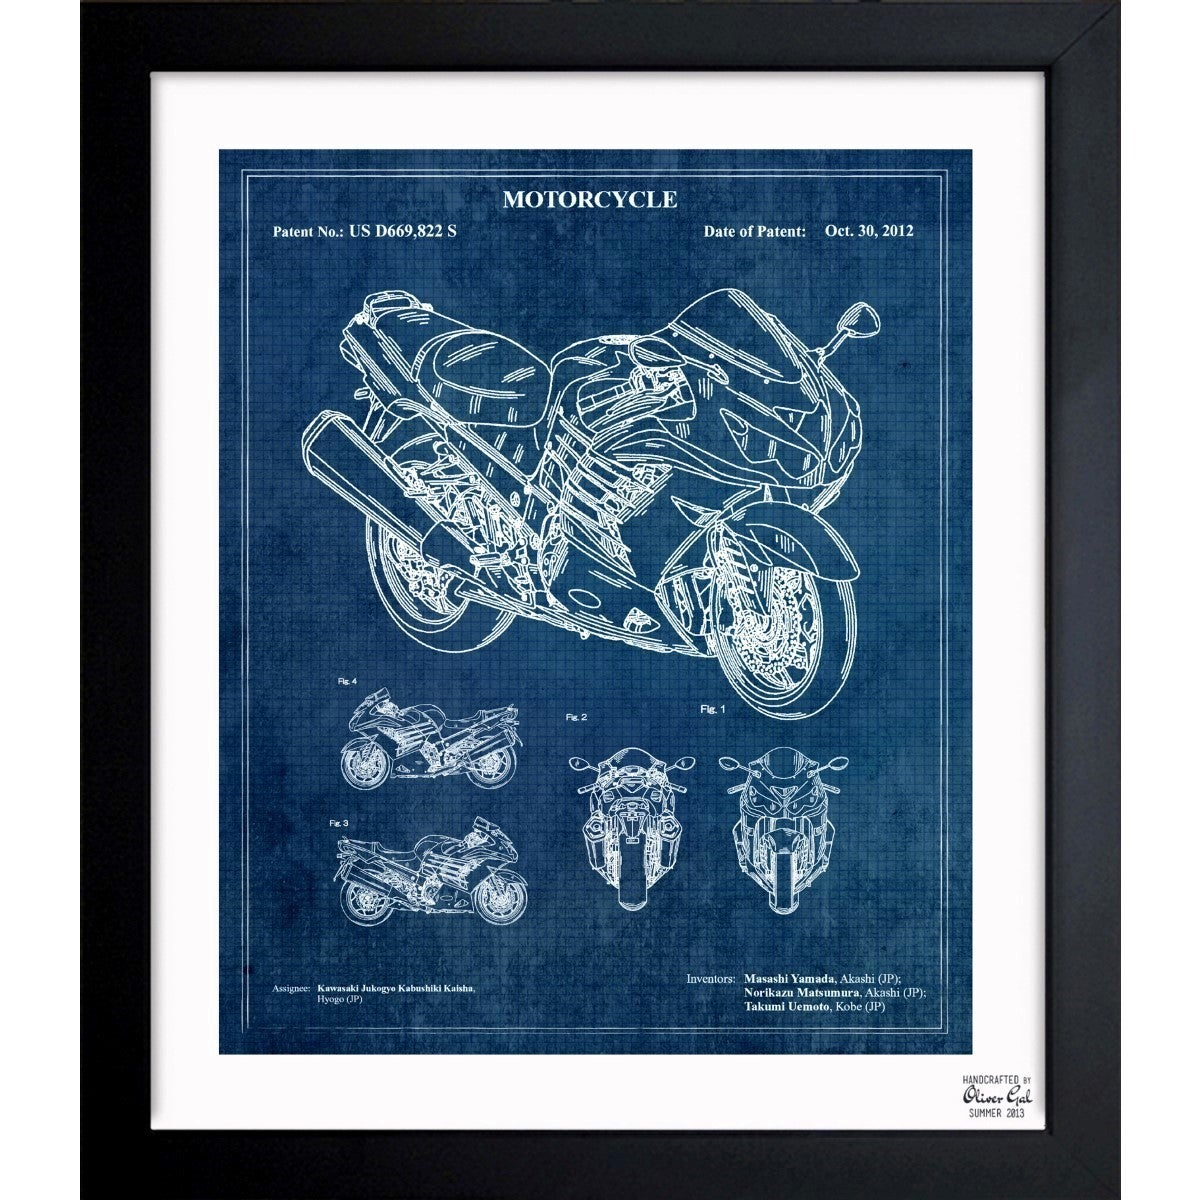 Oliver gal motorcycle 2012 framed blueprint art free shipping oliver gal motorcycle 2012 framed blueprint art free shipping today overstock 18480634 malvernweather Gallery